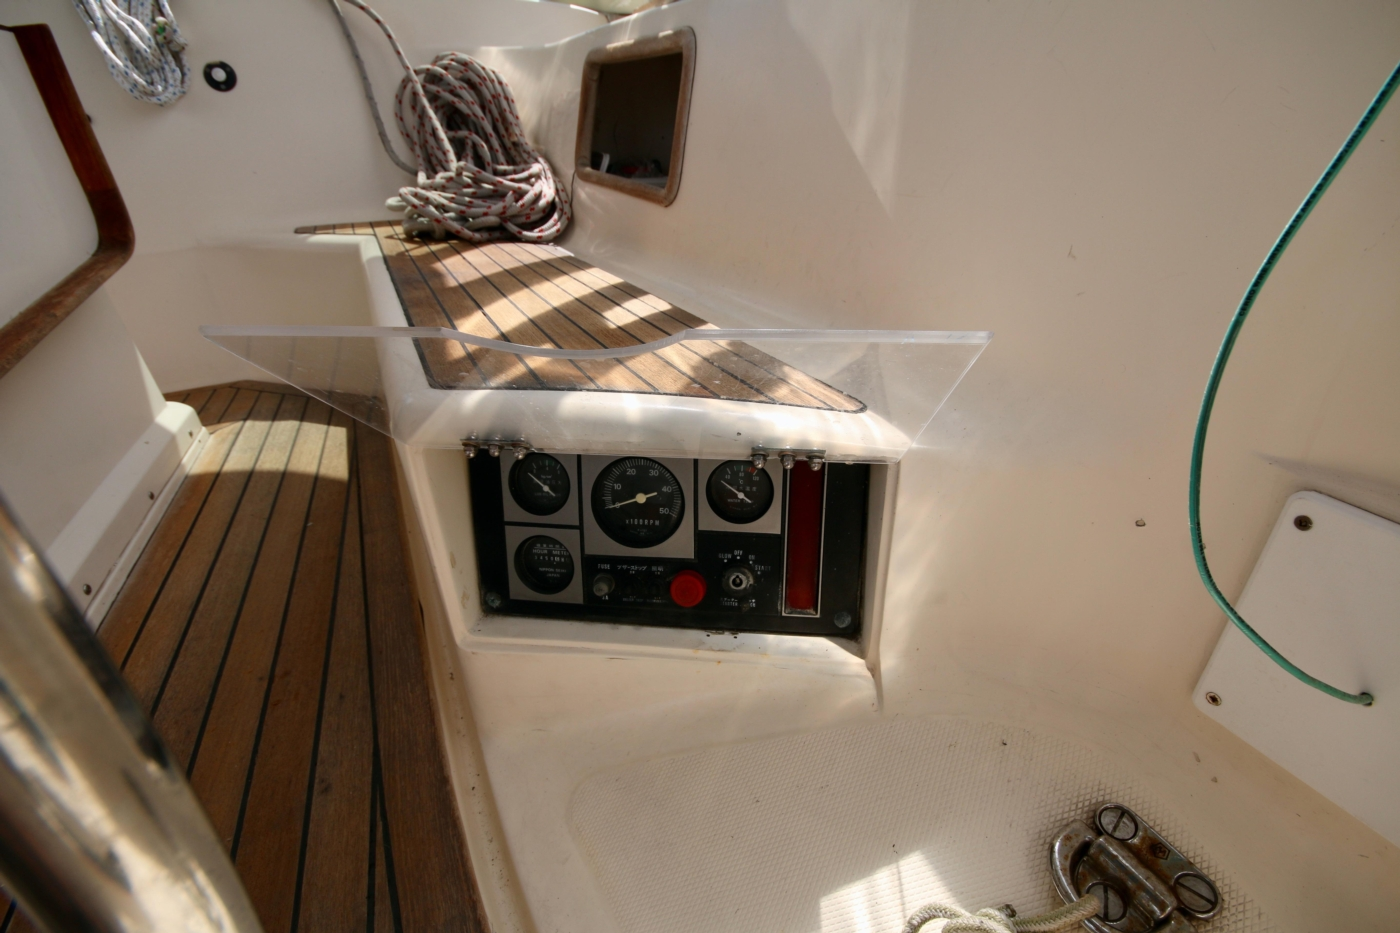 1996 Tanton 45 Offshore, Engine controls